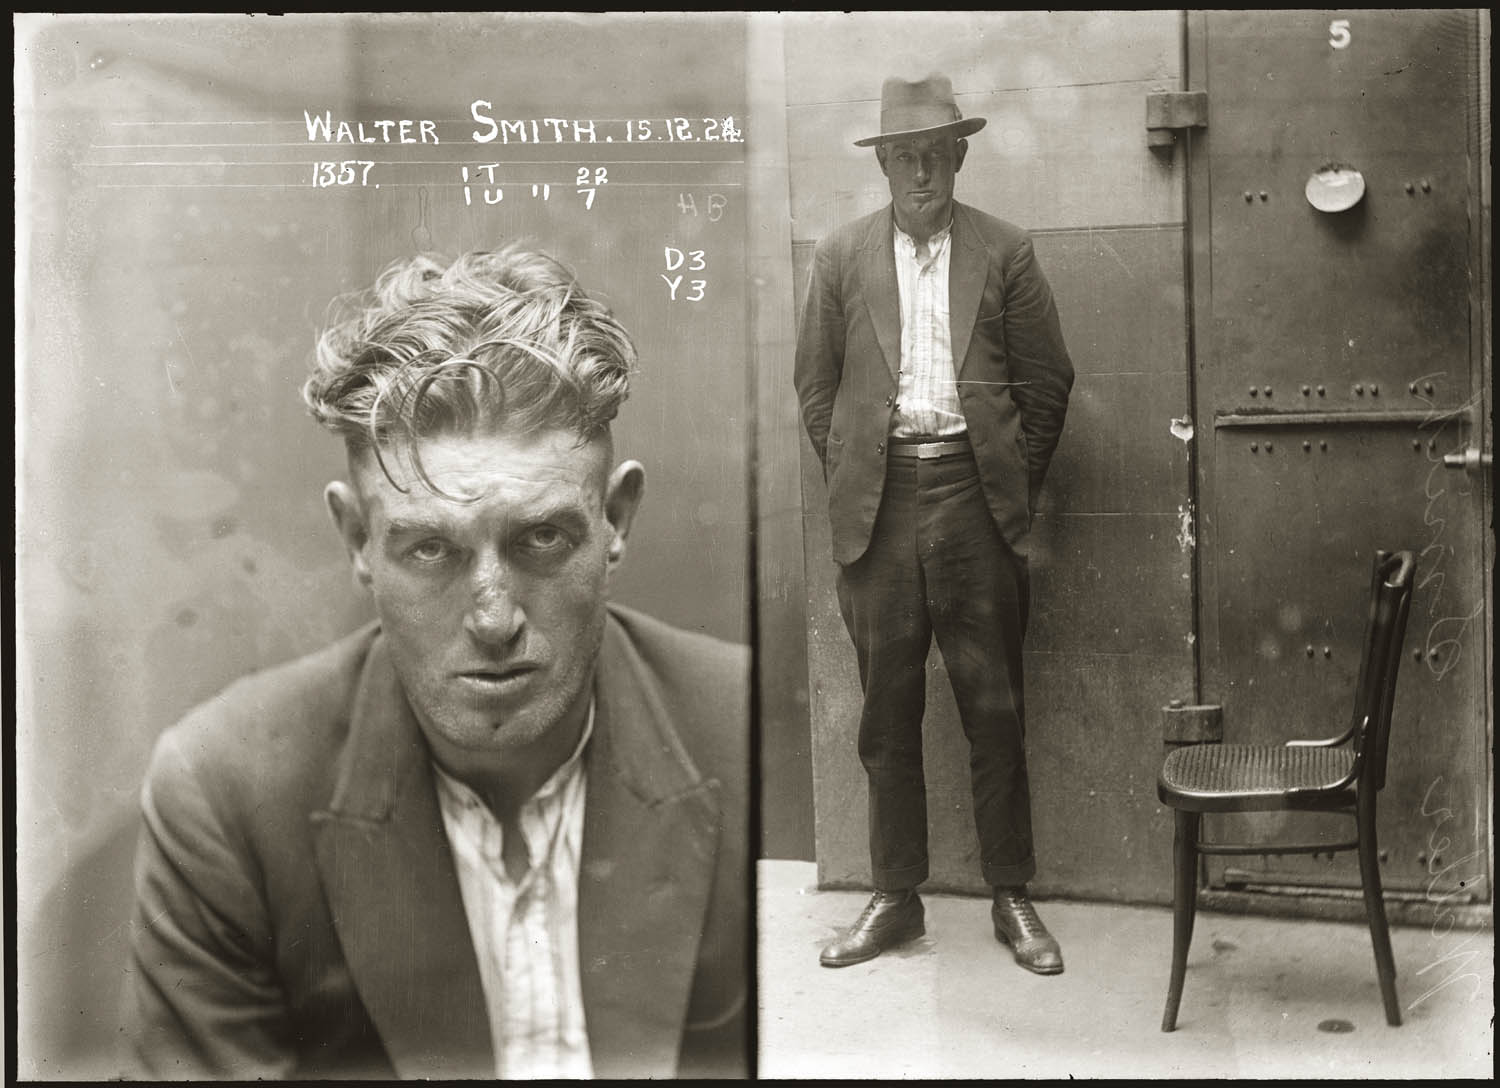 Mug shot of Walter Smith, 15 December 1924, location unknown.